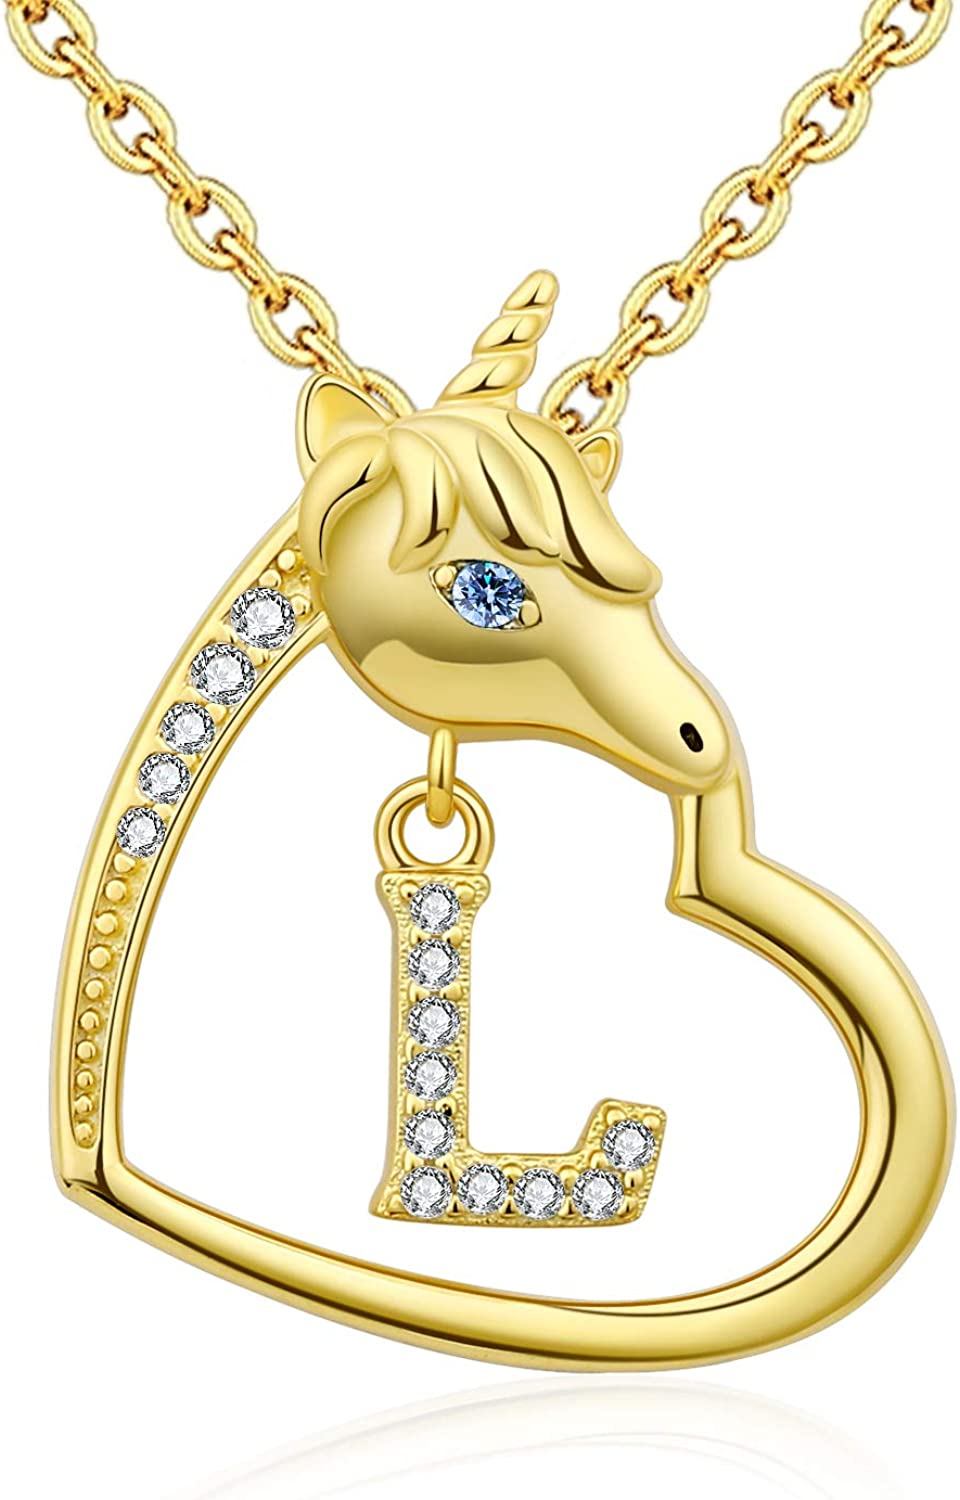 Award-winning store 18K-Gold-Plated Unicorn Heart Initial Necklaces Louisville-Jefferson County Mall Sterling S 925 -